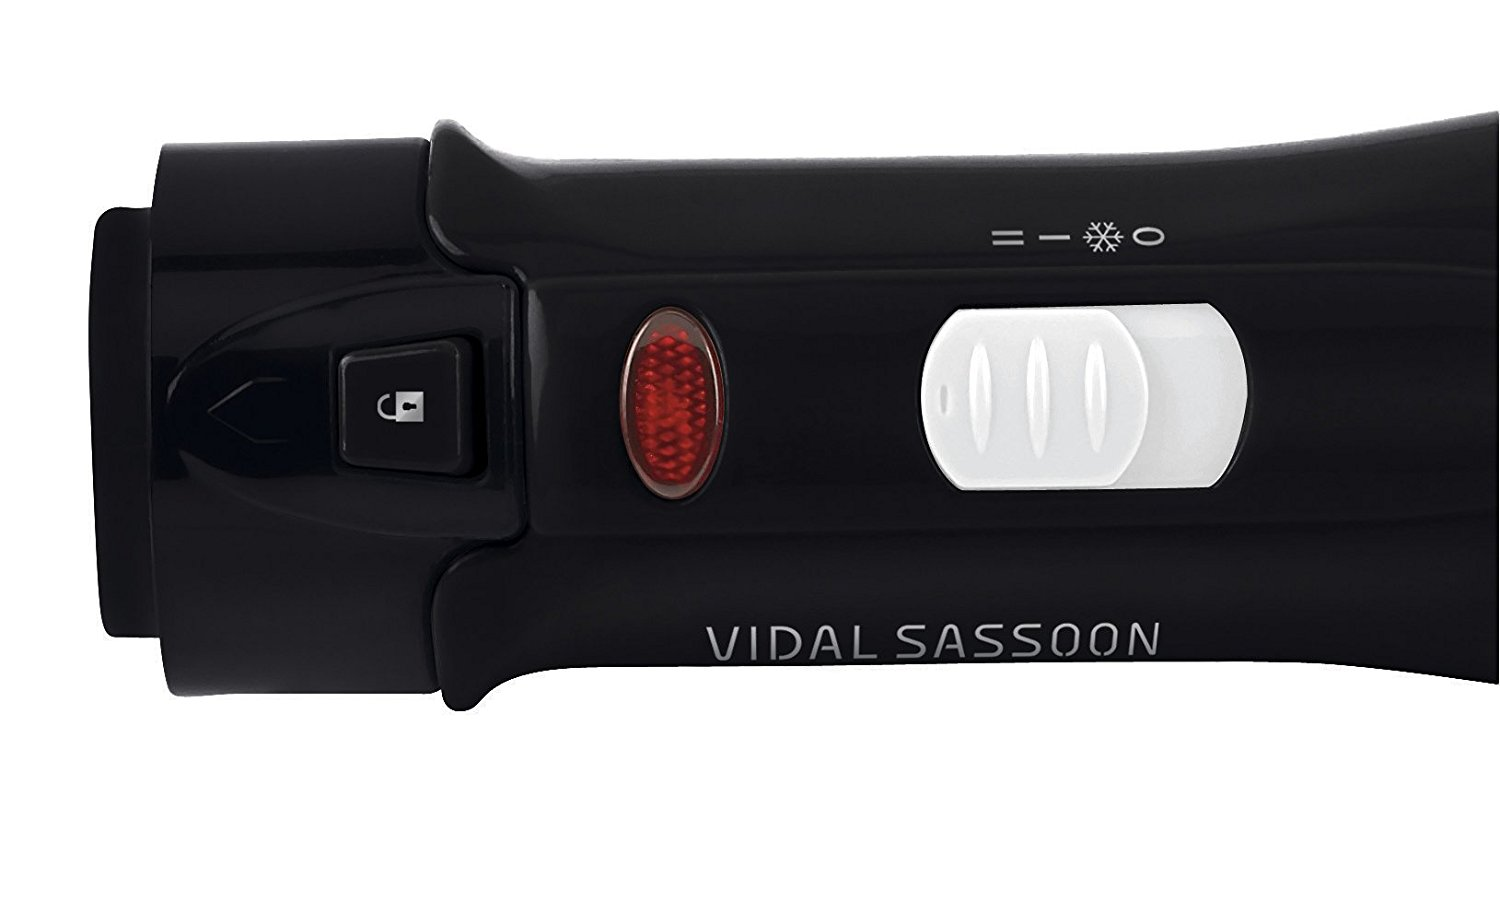 Vidal Sassoon 1200w Ultimate 5 In 1 Ionic Curling Hot Air